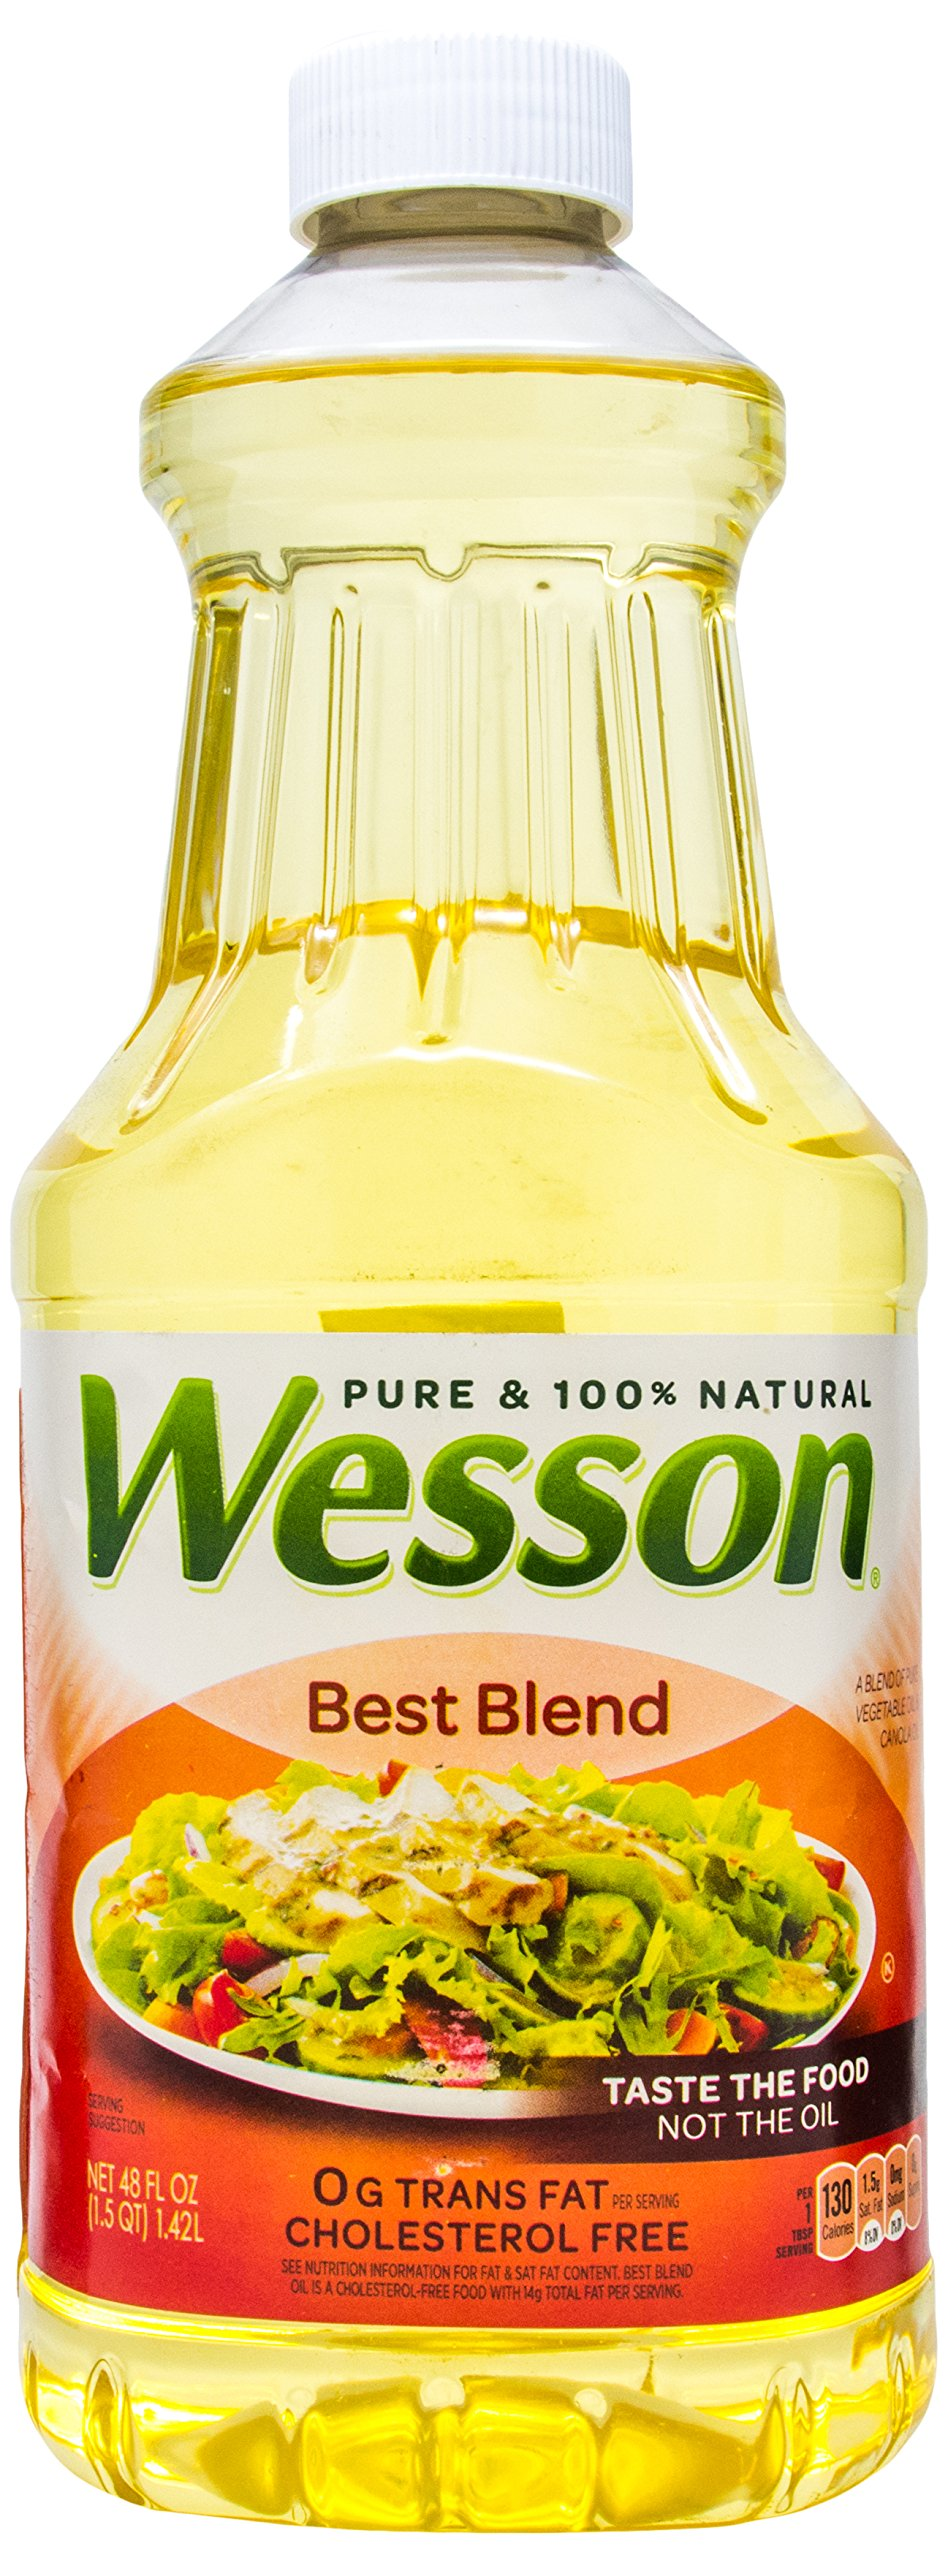 Wesson Best Blend Pure 100% Natural Vegetable And Canola Oils, 48 oz